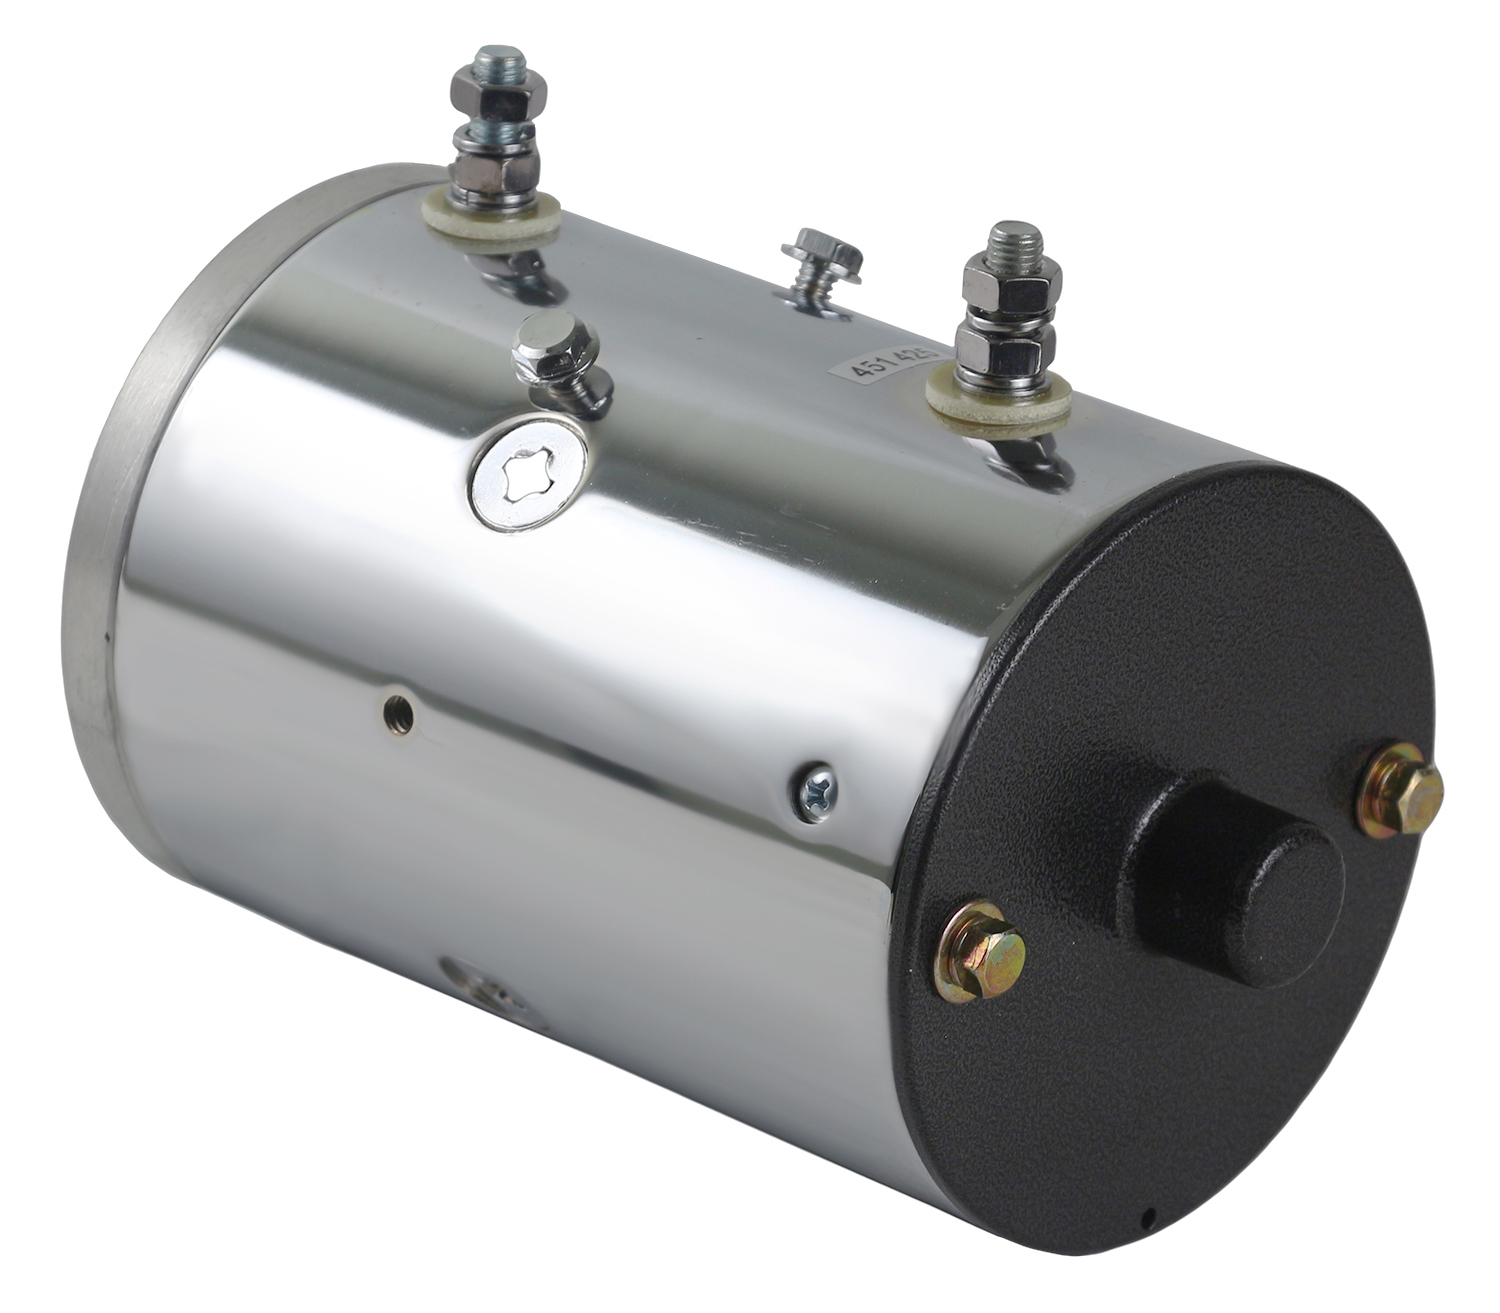 New 12v dc motor hydros low rider competition chrome for How to size a hydraulic pump and motor